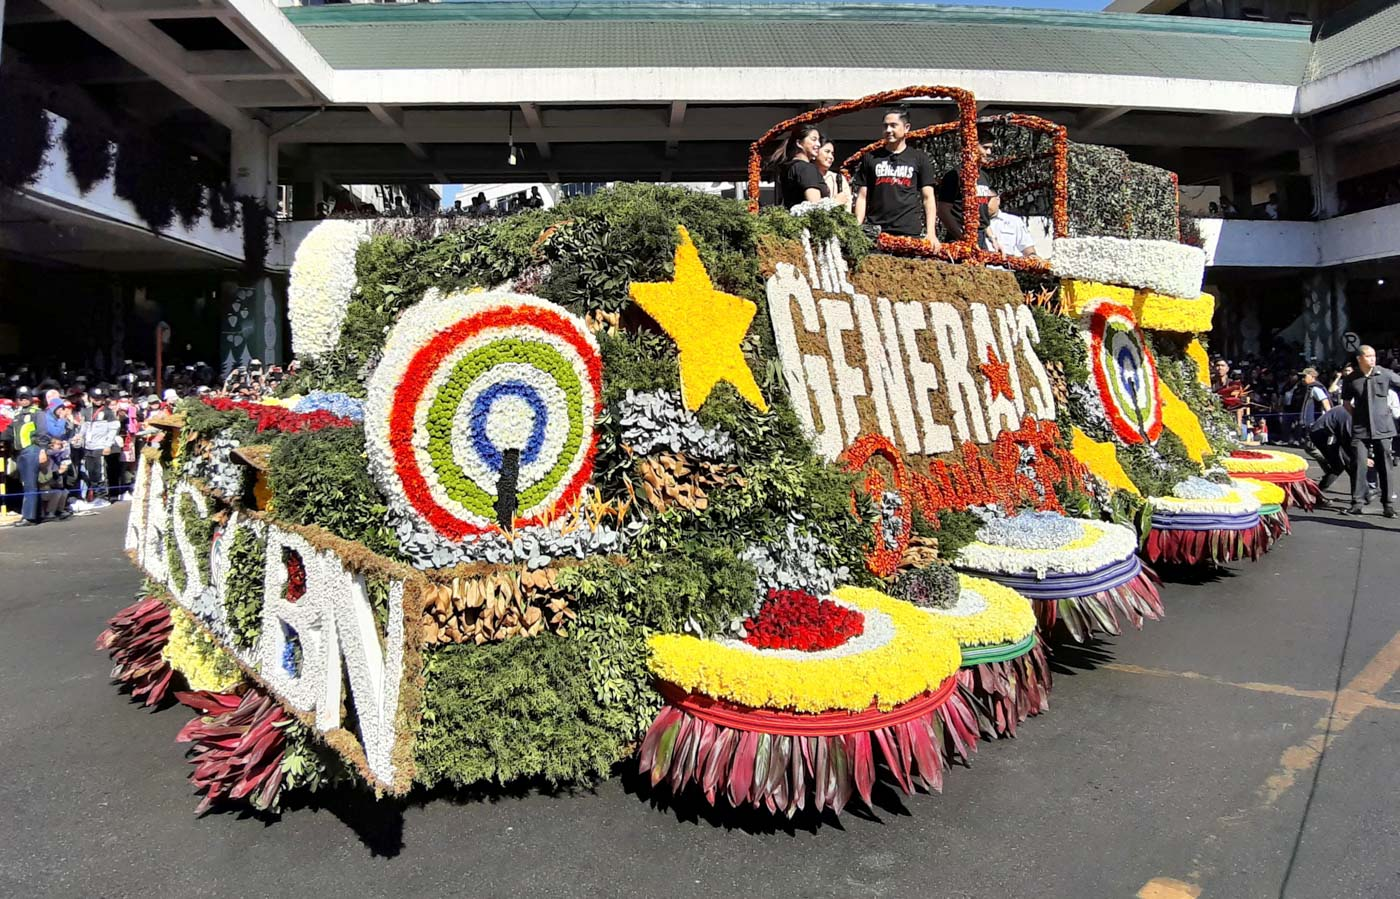 ABS-CBN FLOAT. Angel Locsin and Paulo Avelino lead the cast of 'The General's Daughter' in the ABS-CBN float.